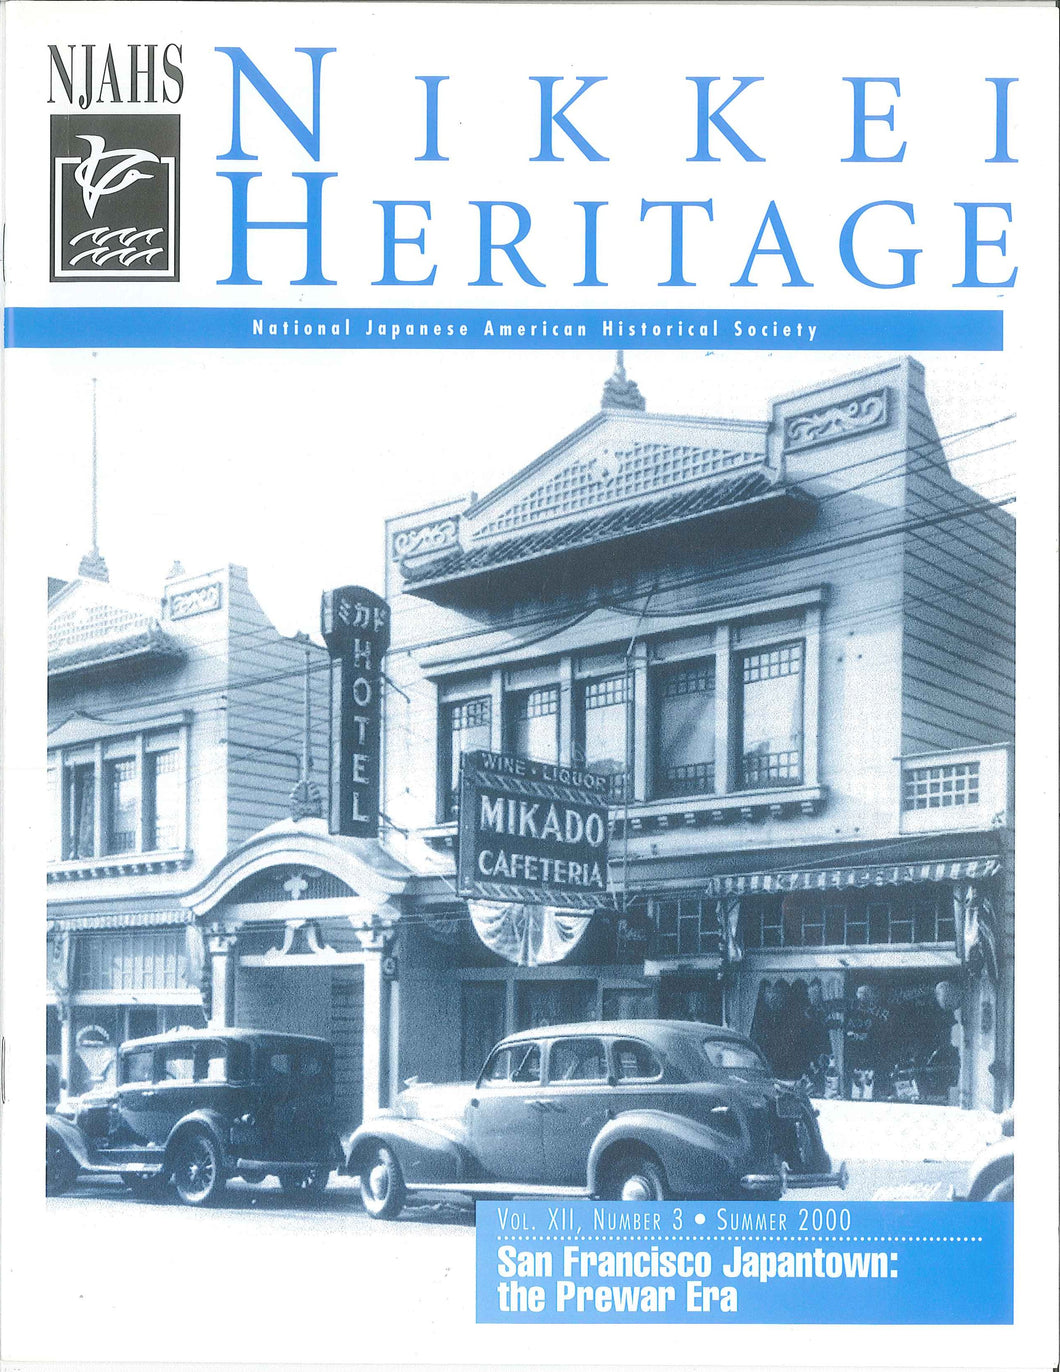 Nikkei Heritage - San Francisco Japantown: the Prewar Era